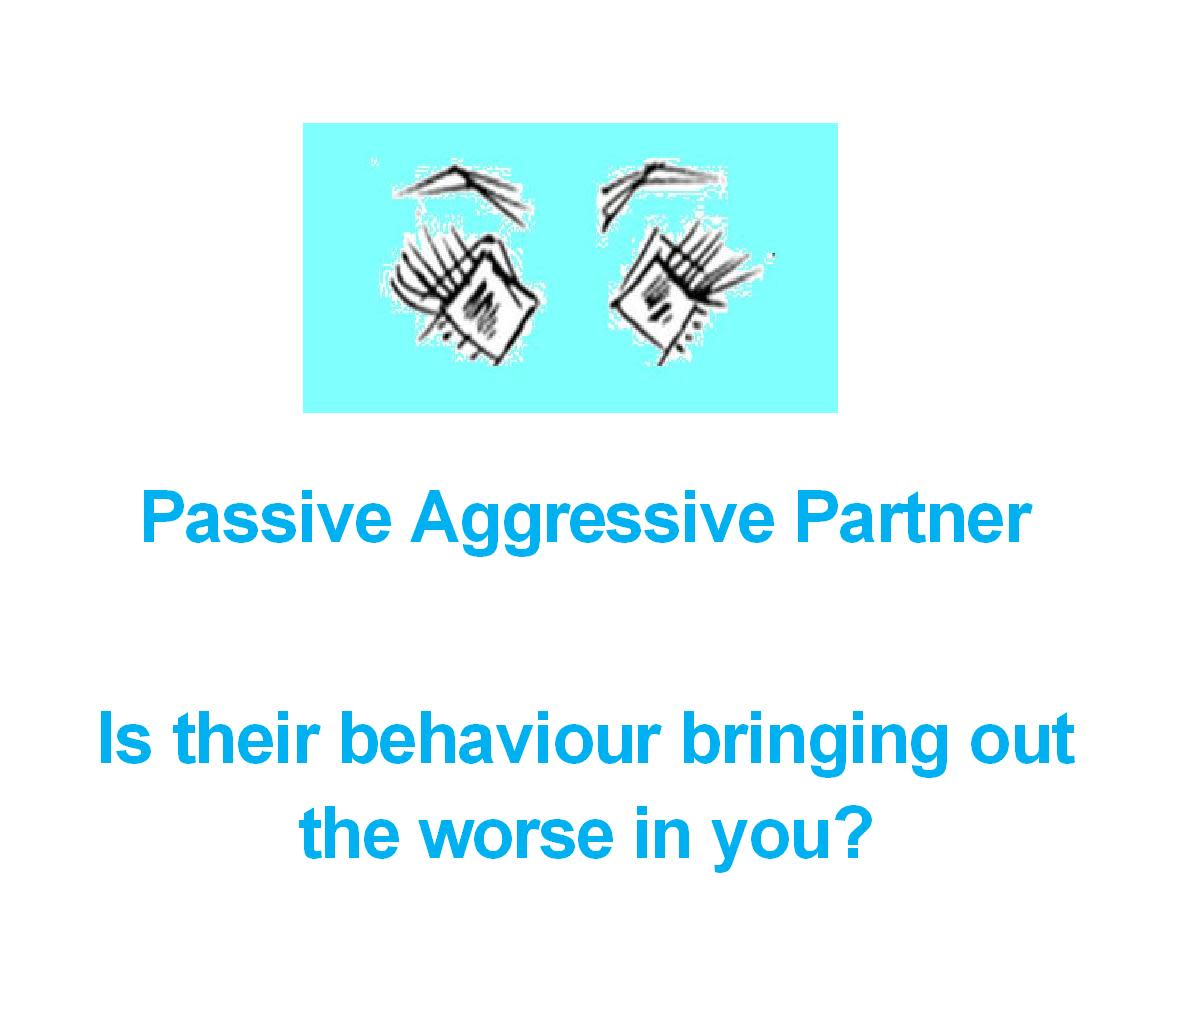 Passive Aggressive Partner – Is Their Behaviour Bringing Out the Worst in You?